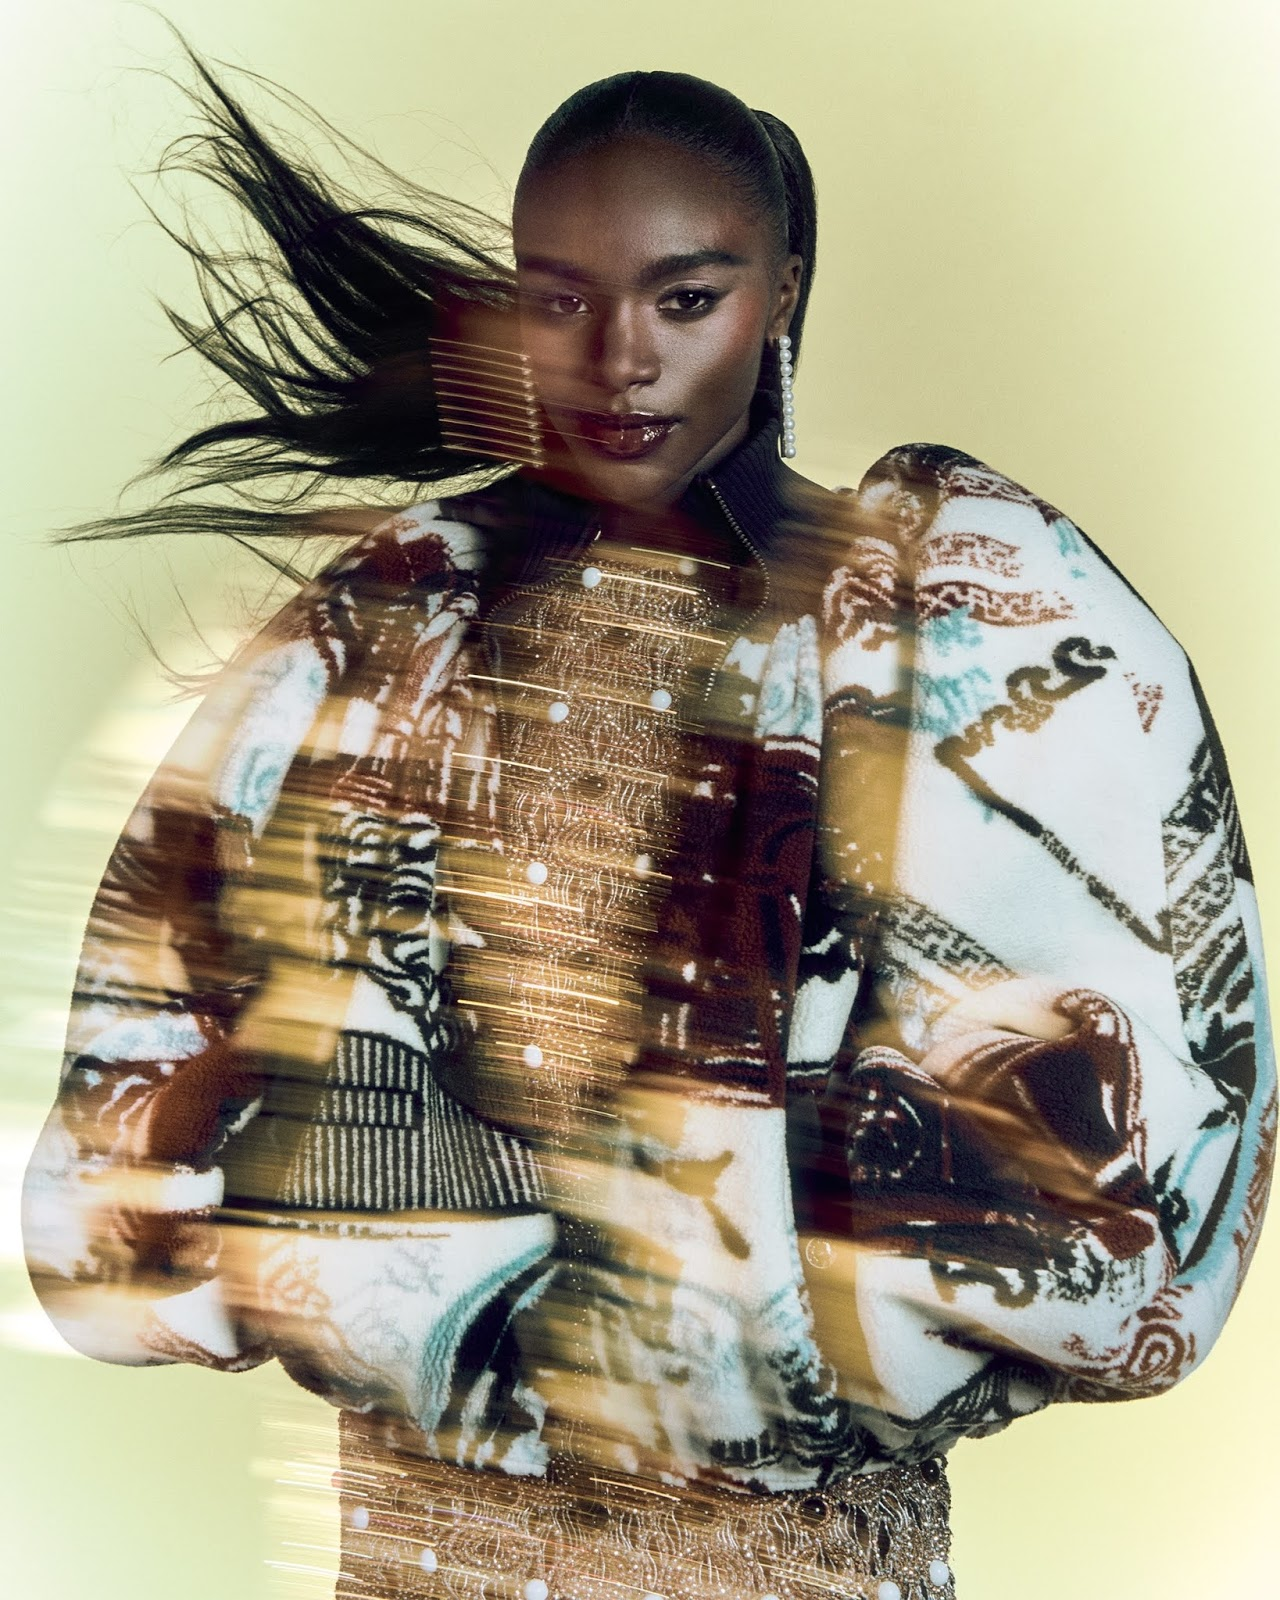 Dina Asher-Smith poses for Vogue UK August 2021